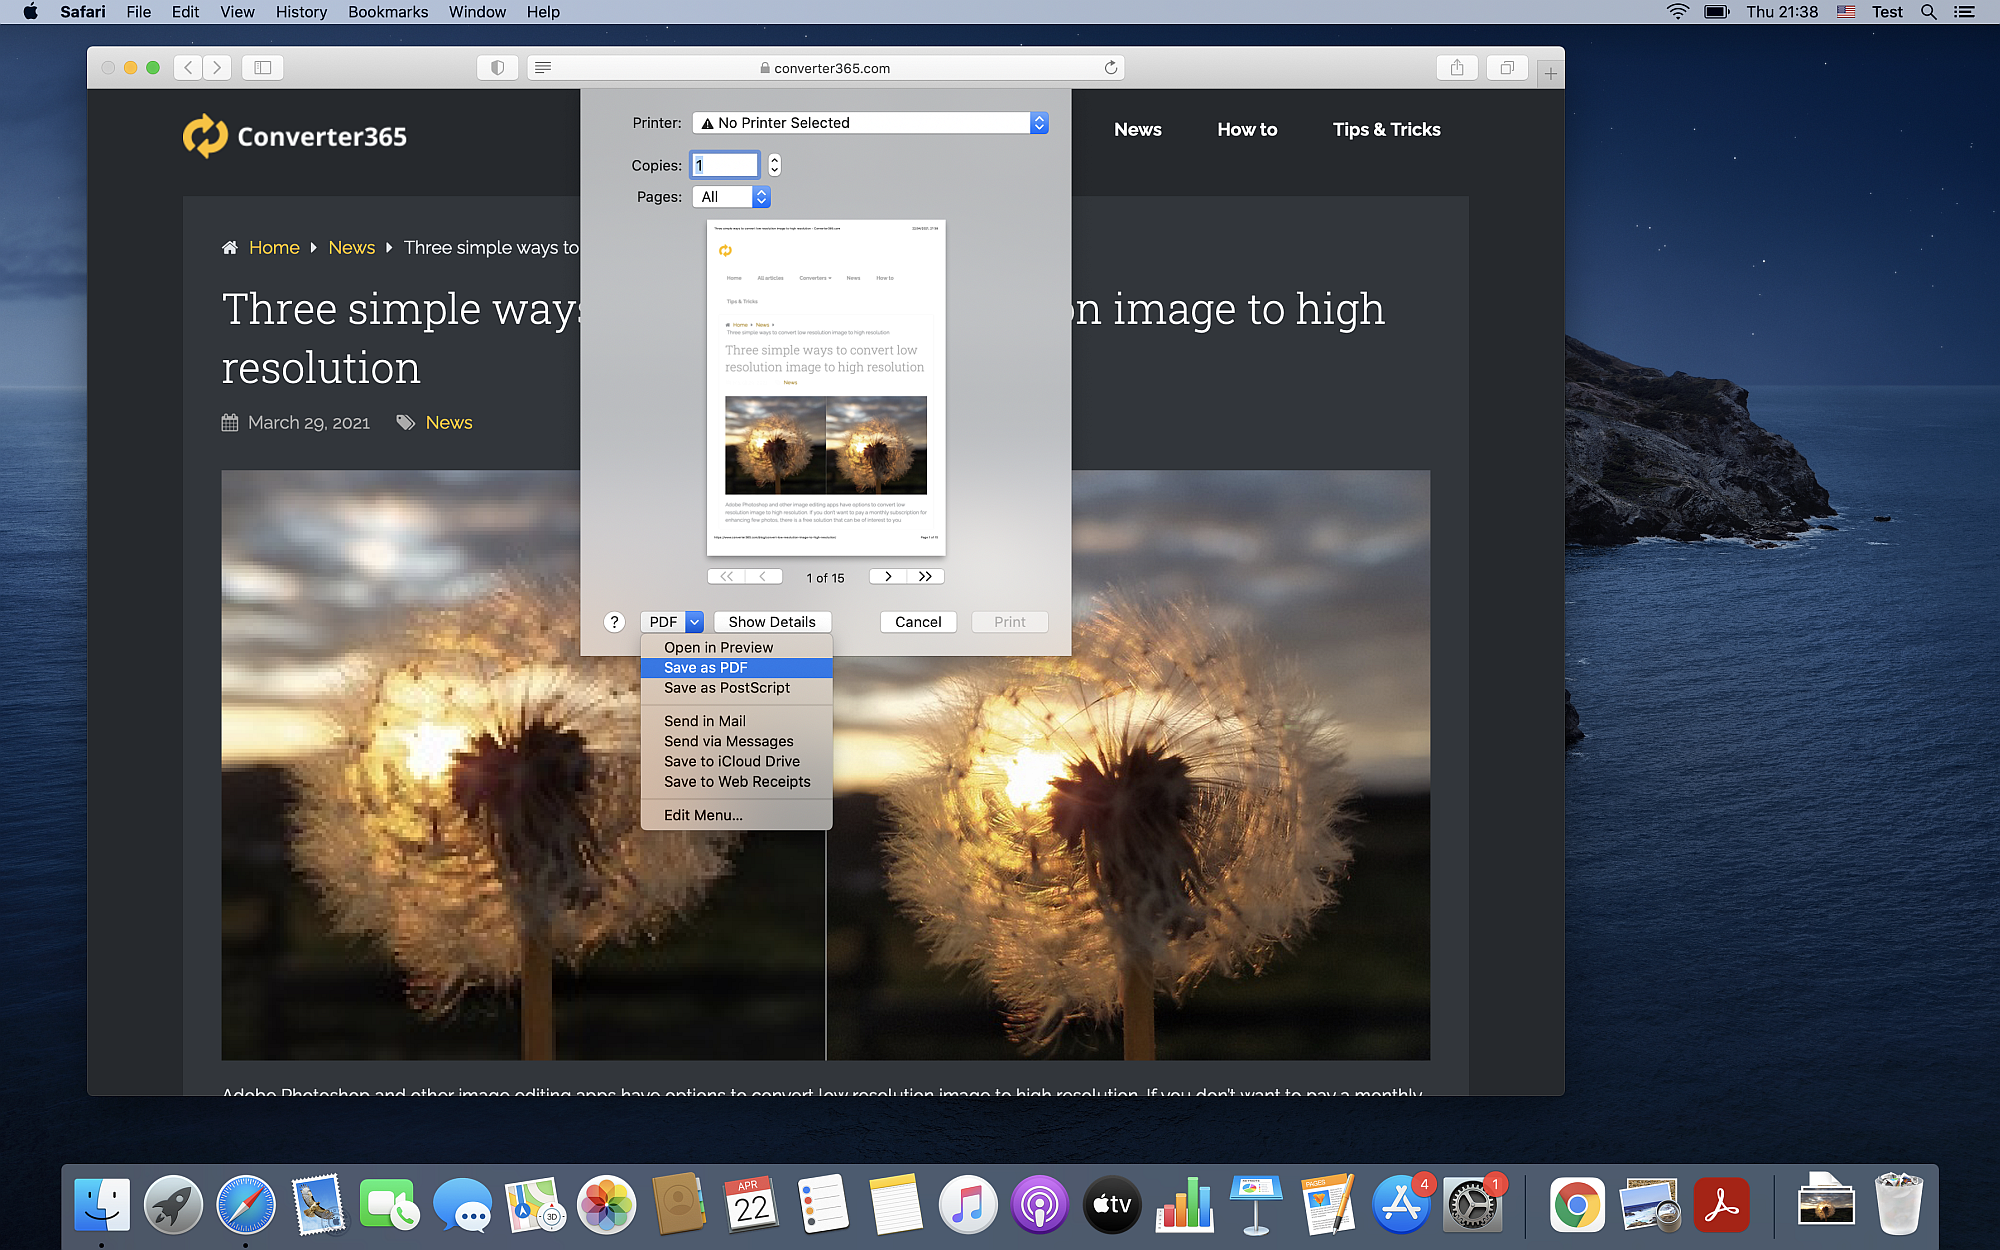 How to save a webpage as a PDF on Mac OS using Safari?